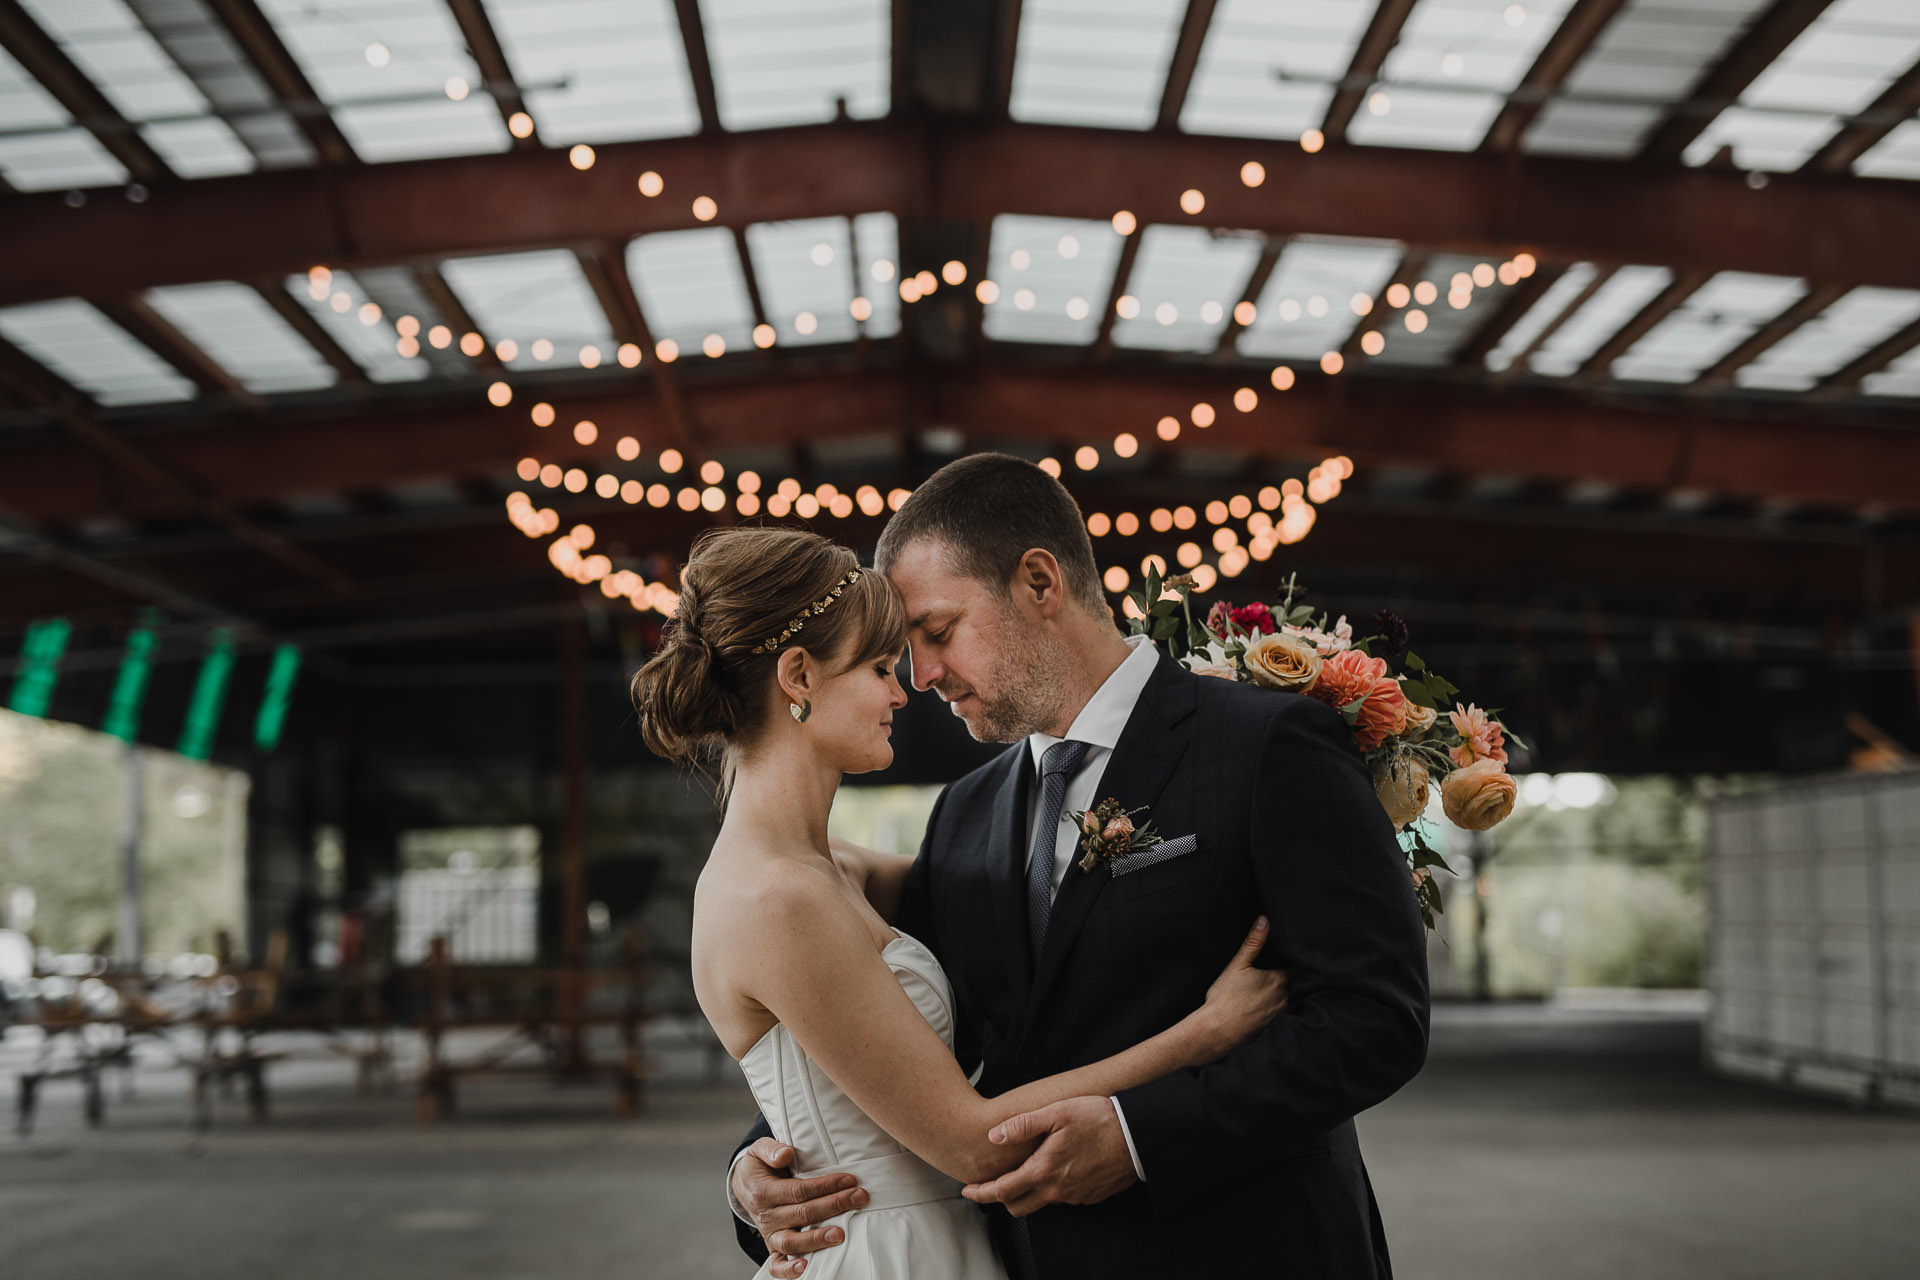 Evergreen Brickworks wedding photographer - urban wedding portrait